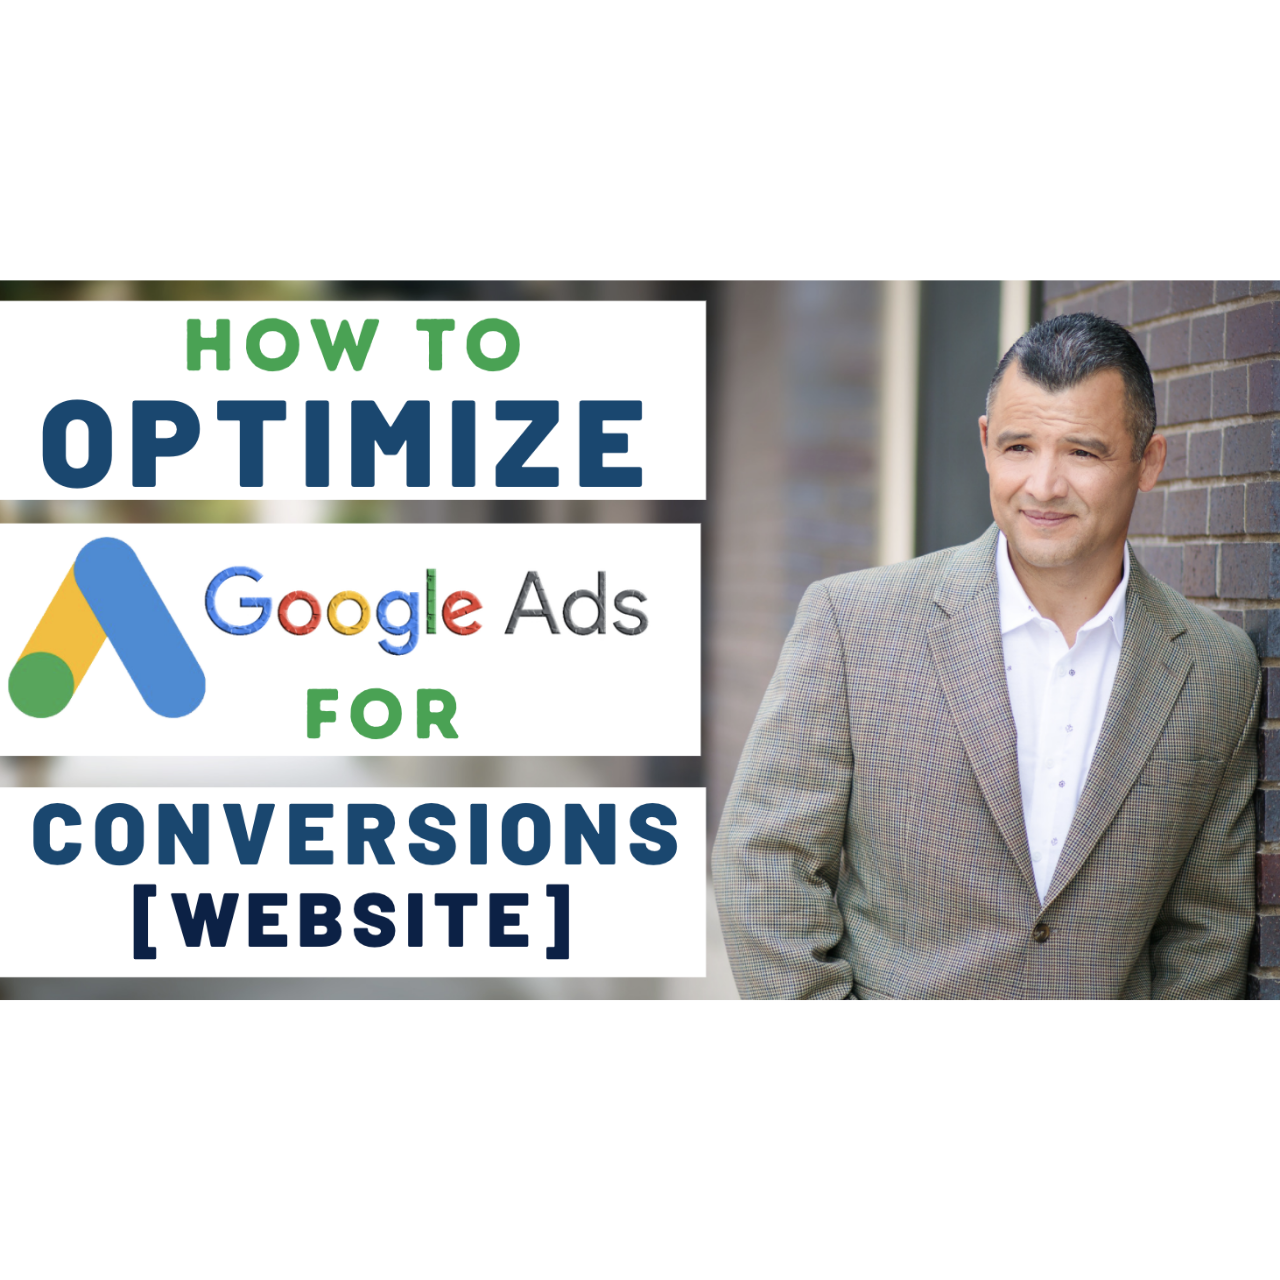 How to optimize google ads for conversions [website]